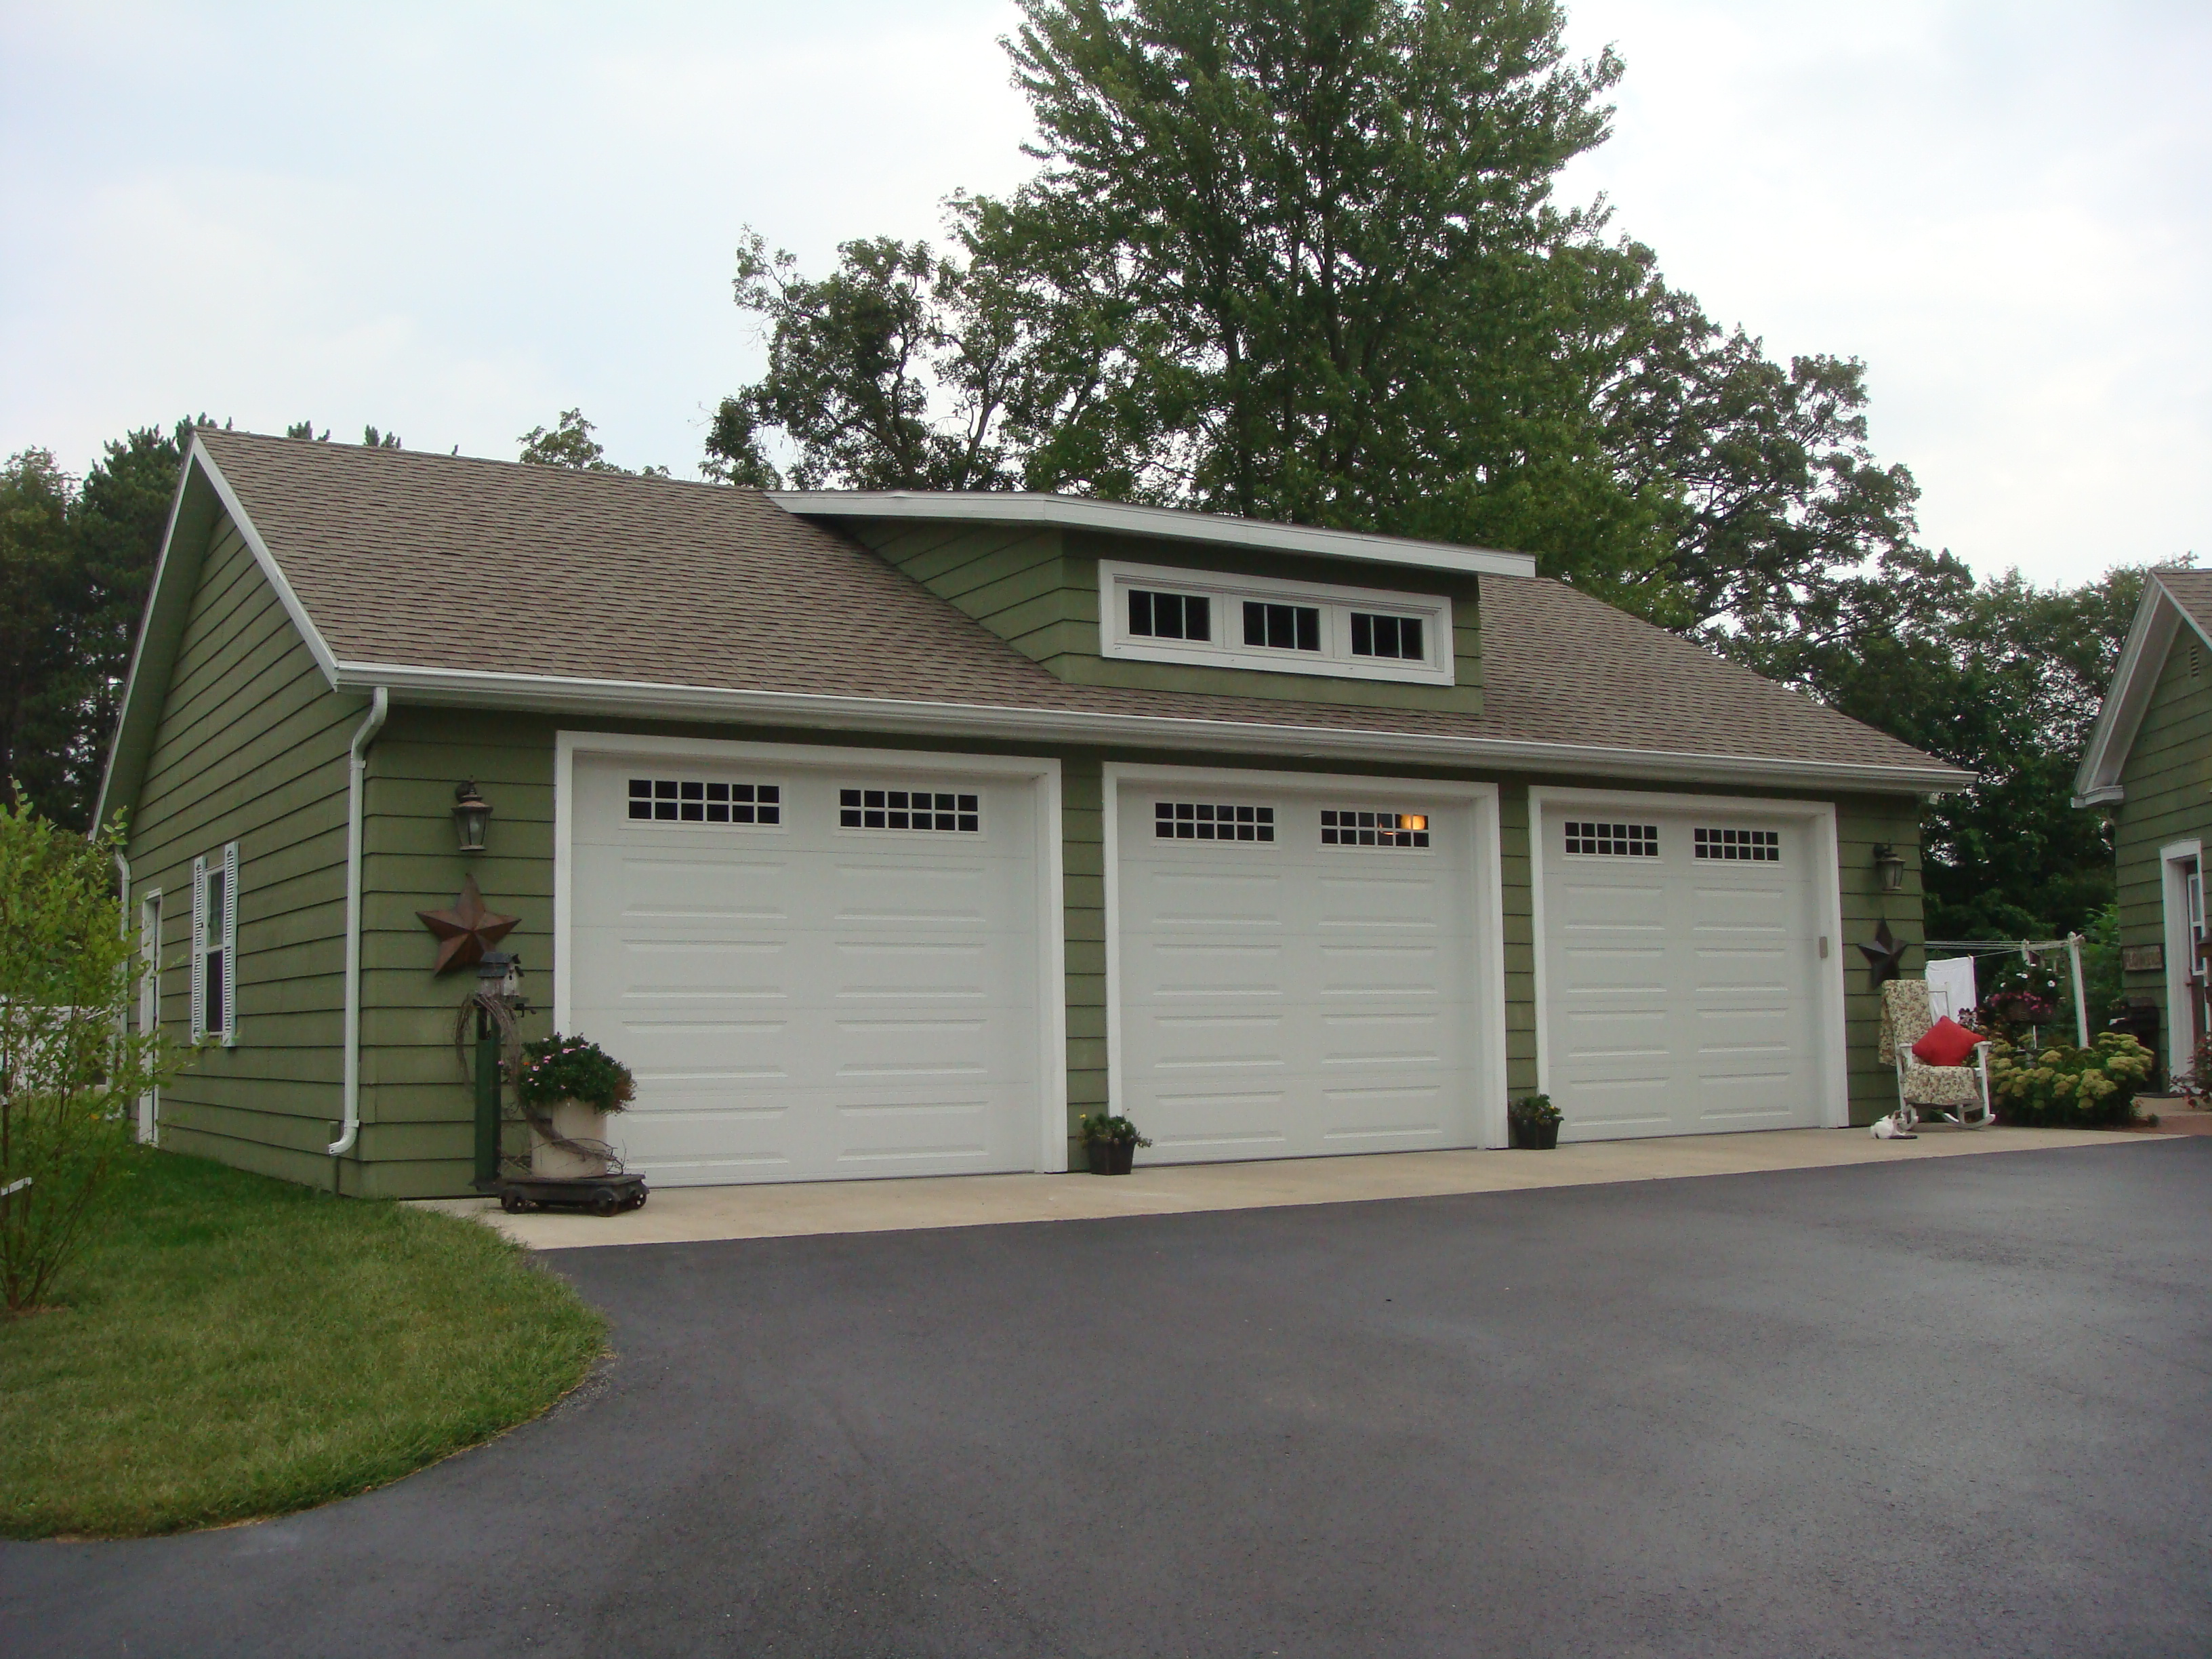 3 Car Garage w/Loft | Brian Gorges Construction, LLC